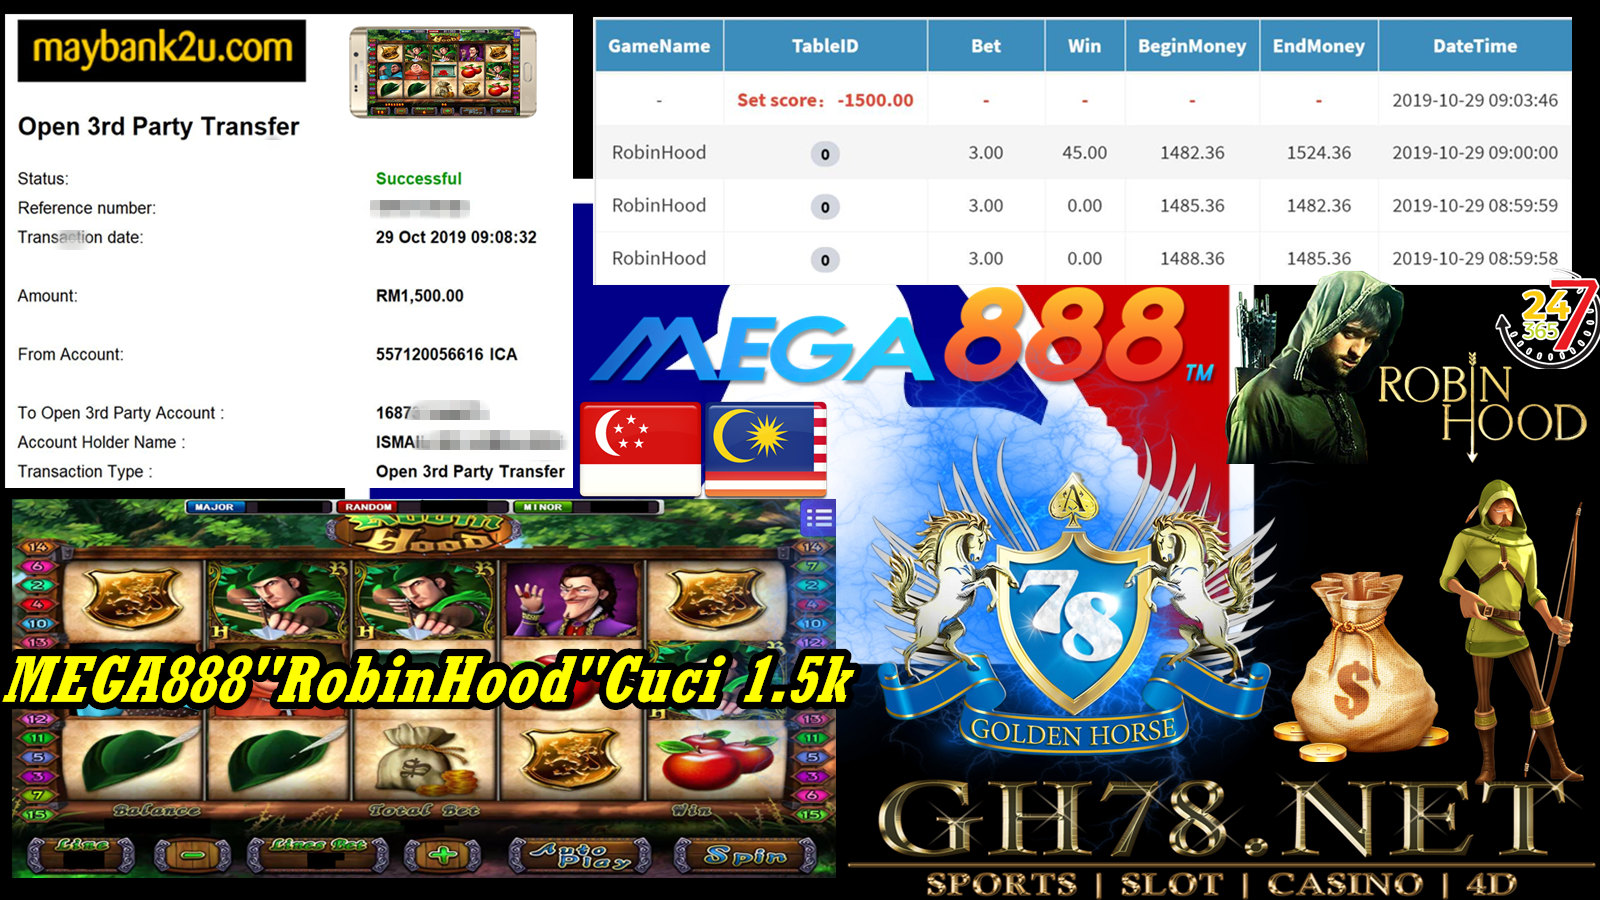 MEGA888 FT.ROBINHOOD WITHDRAW RM1500 !!